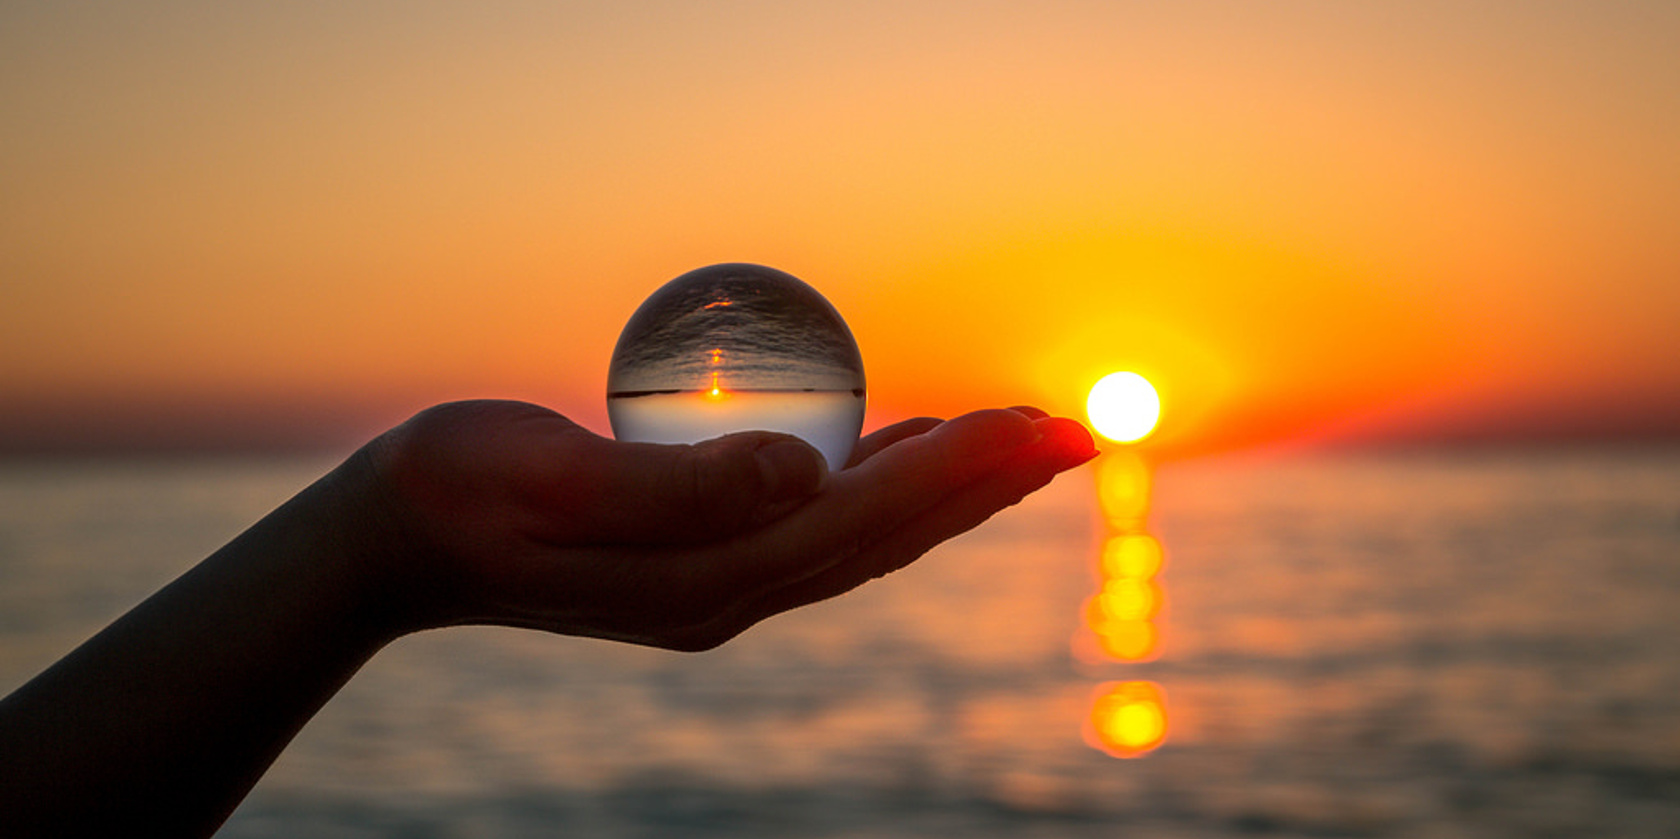 someone holding a glass ball in the the sunset